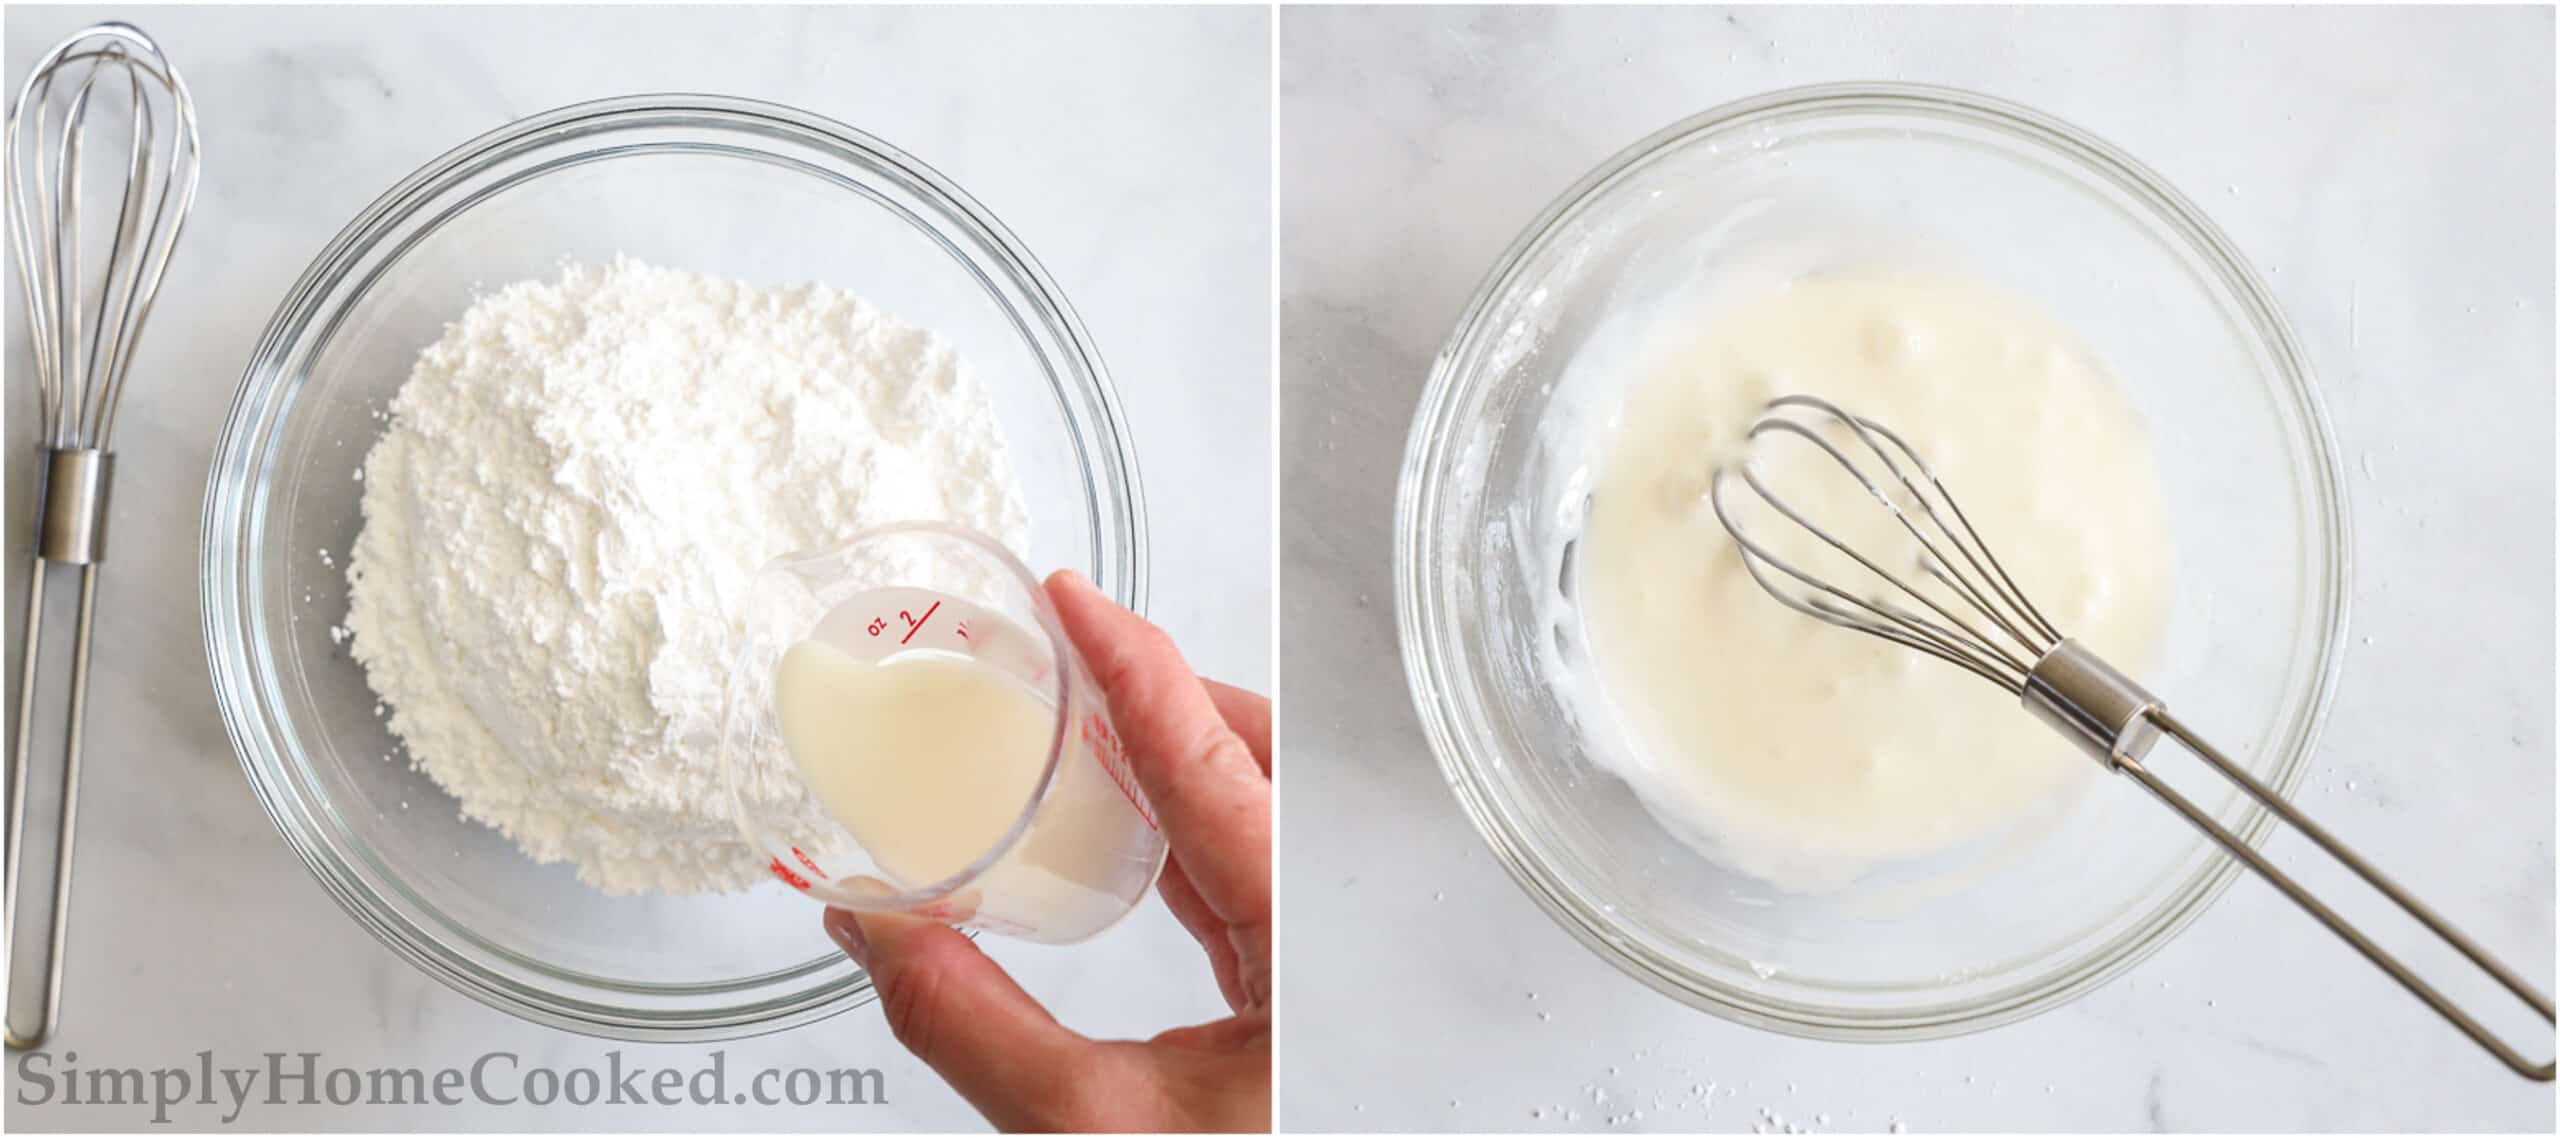 Steps to make glaze for Apple Fritter Bread, including whisking the milk and powdered sugar together in a clear bowl.